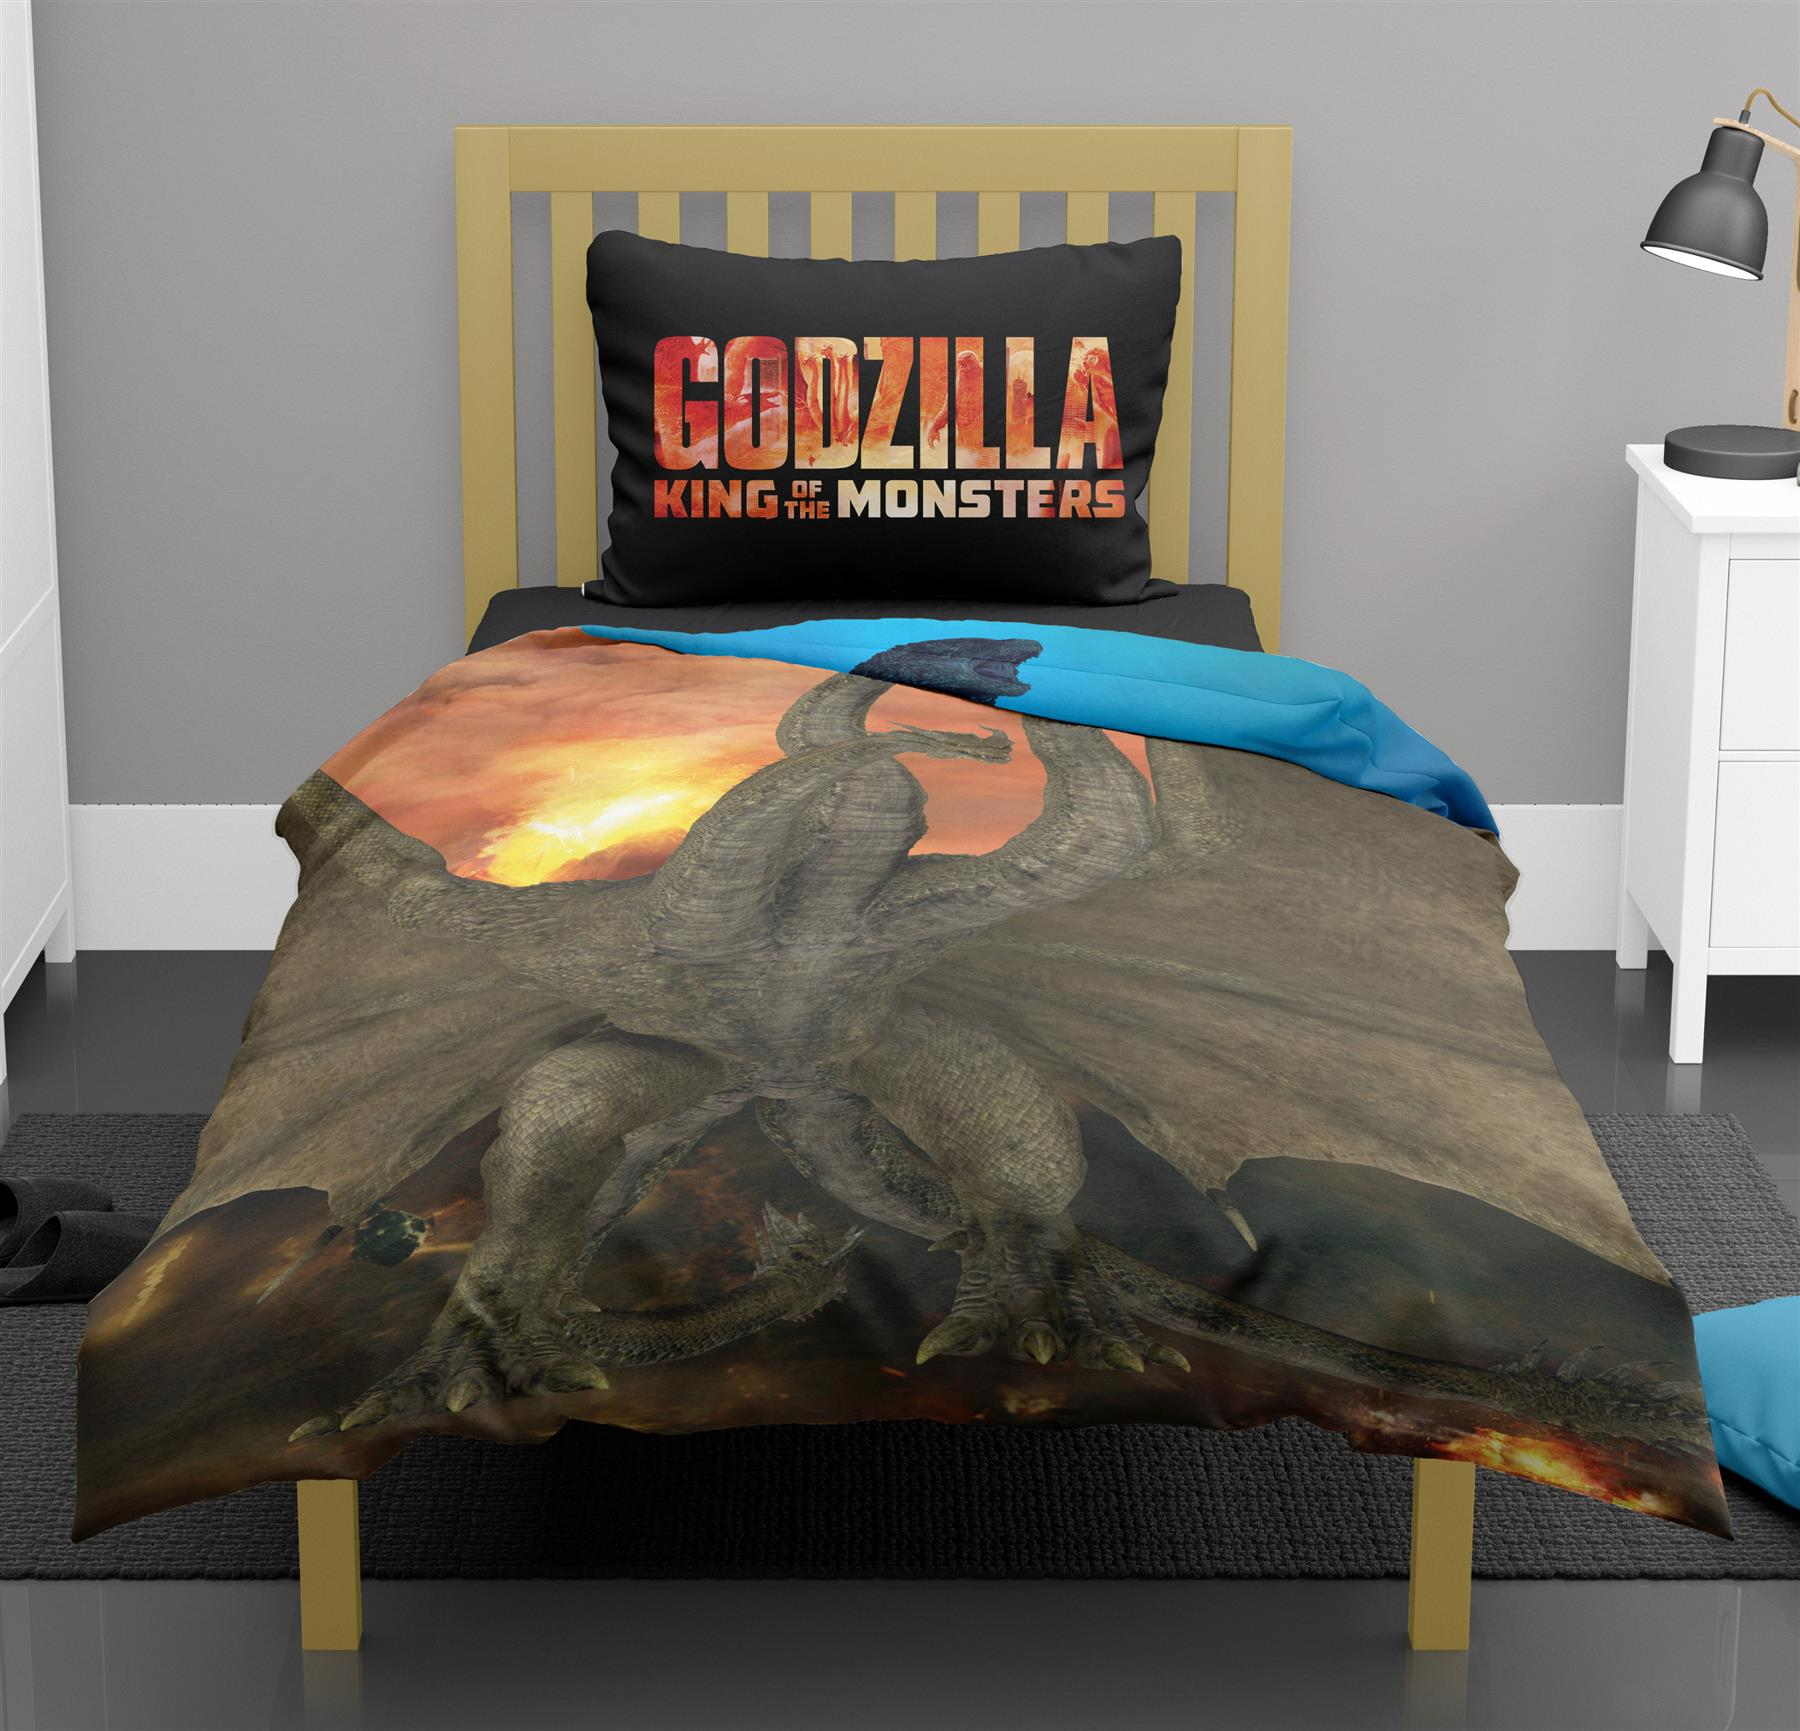 Godzilla-King-of-Monsters-Single-Double-Duvet-Cover-Reversible-Bedding-Set thumbnail 8